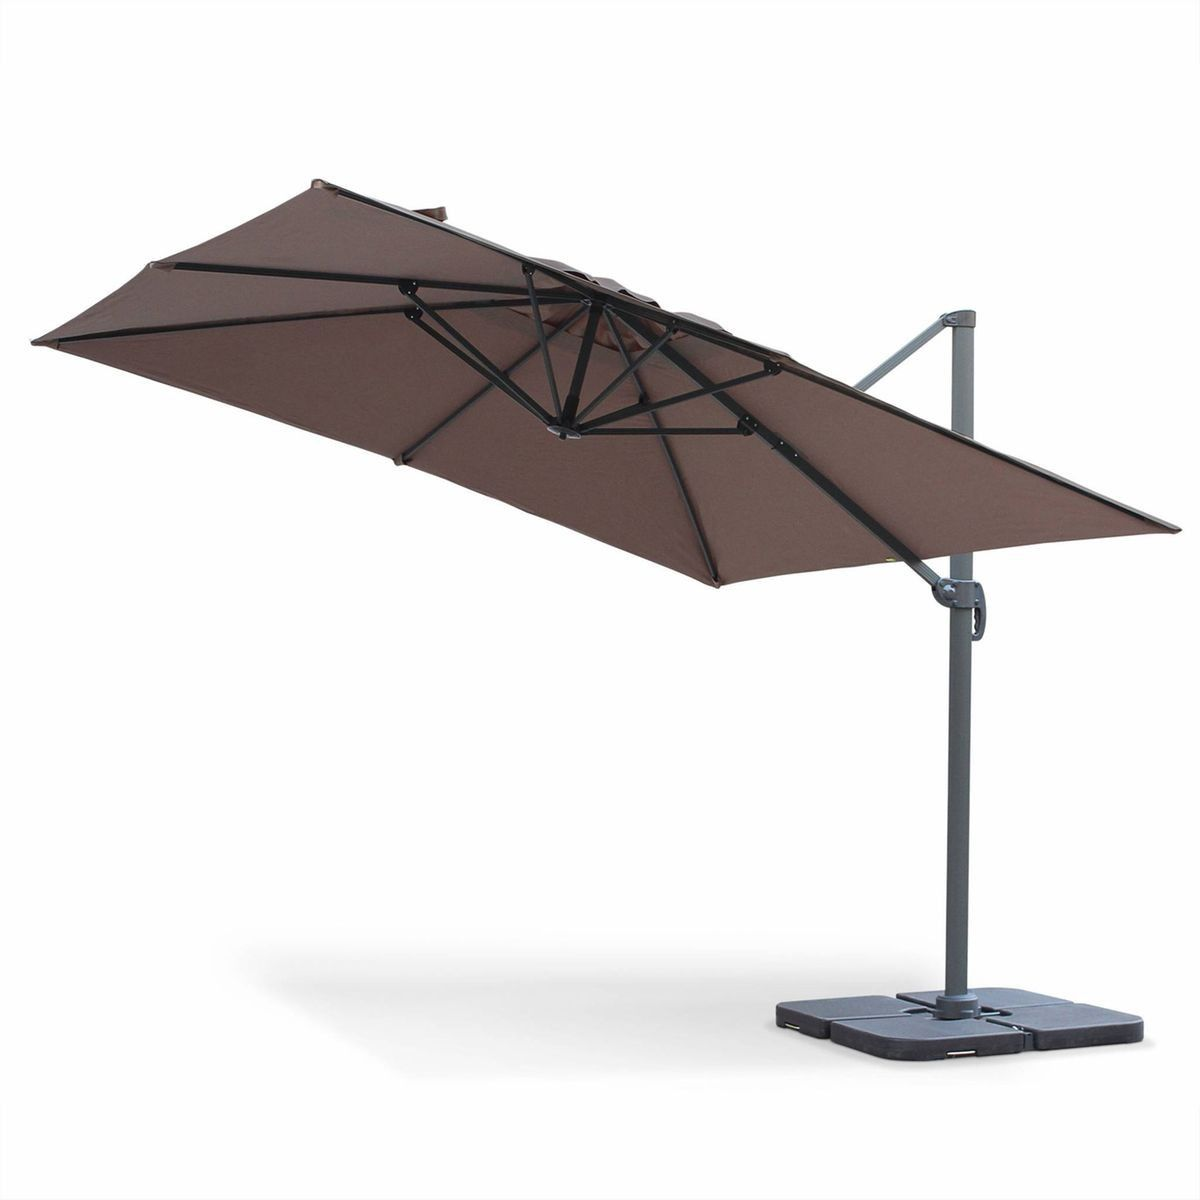 Parasol Deporte Carre 3x3m Haut De Gamme Excentre Inclinable Rotatif A 360 Taupe Taille Tu Products Parasol Deporte Parasol Et Parasols